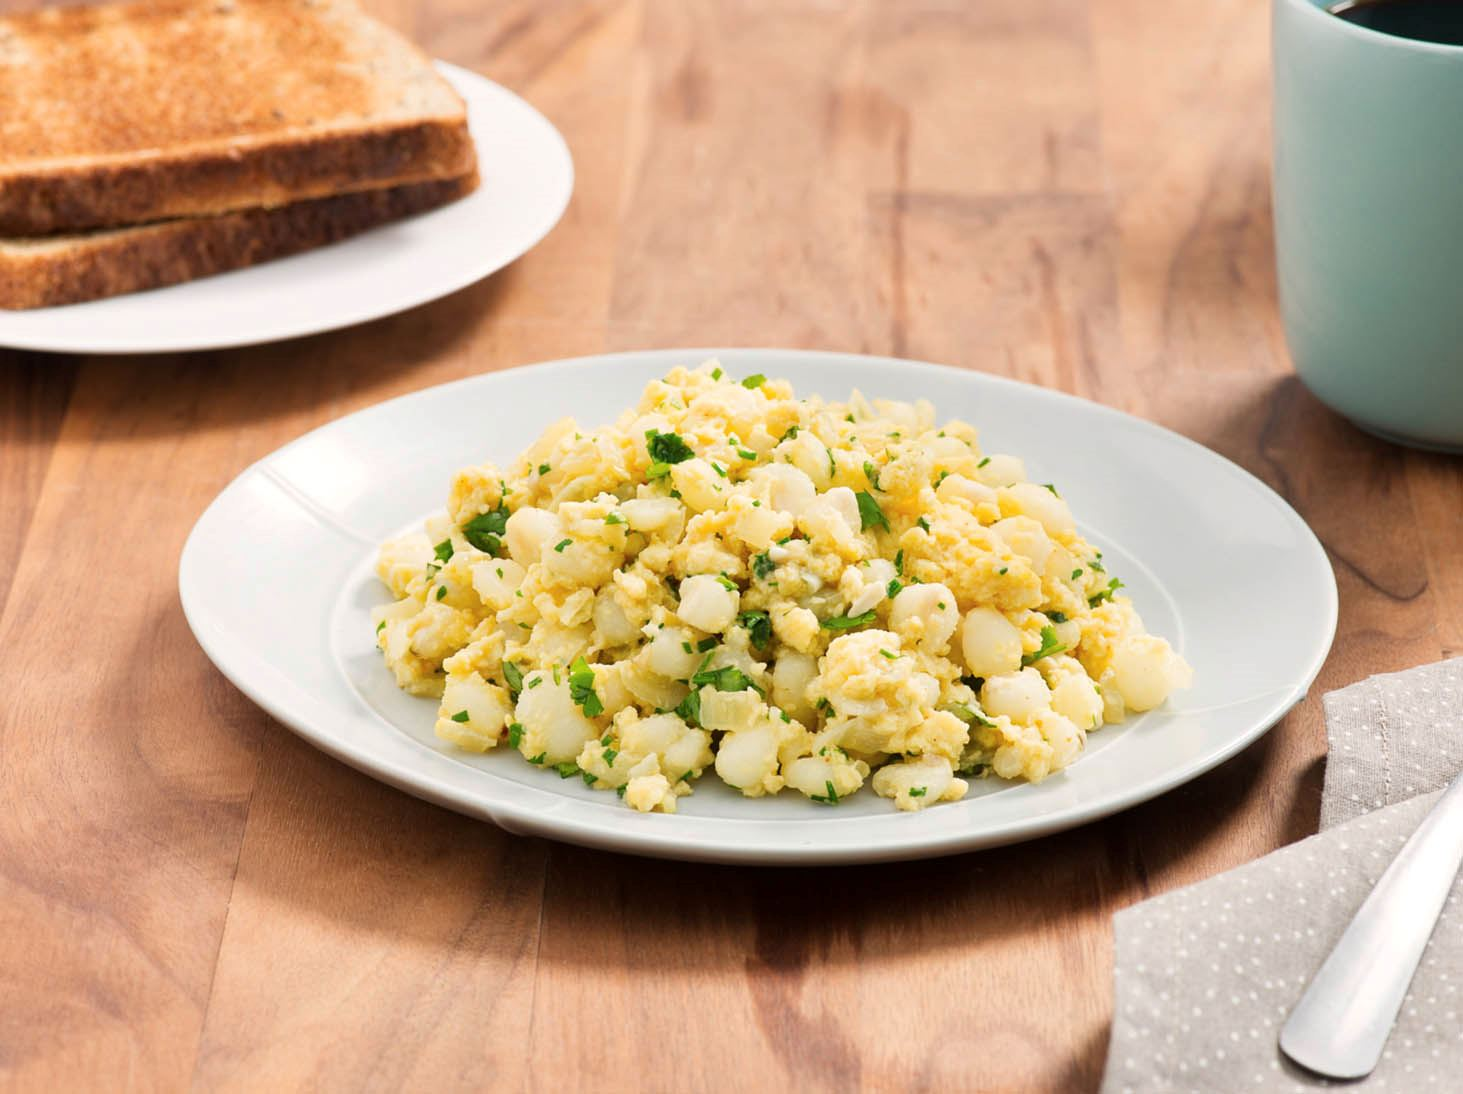 Hominy with Eggs